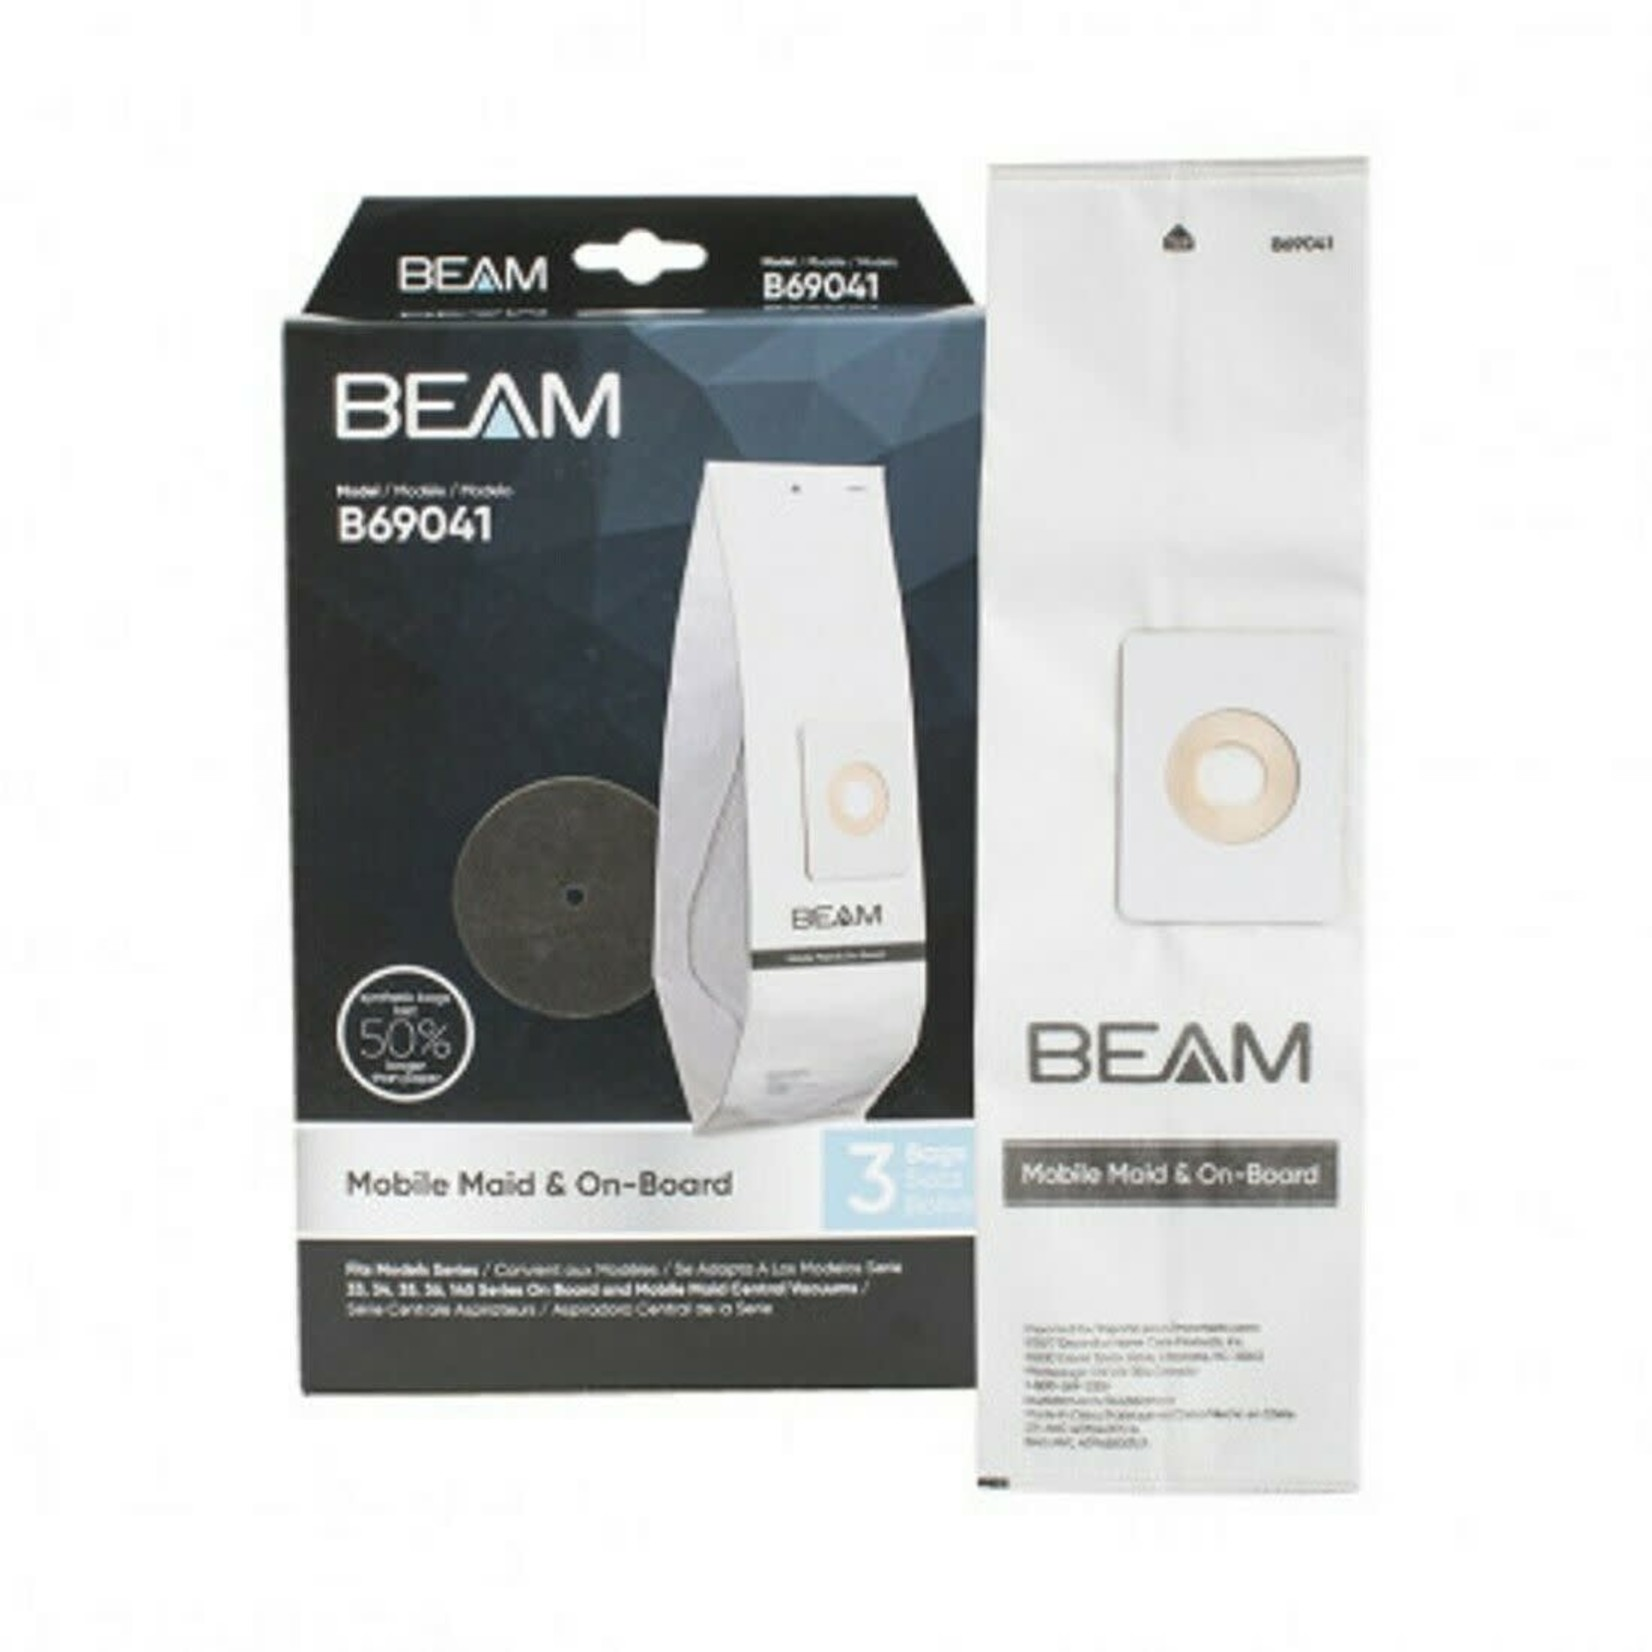 BEAM Beam Filter Bags for Mobile Maid and On-Board